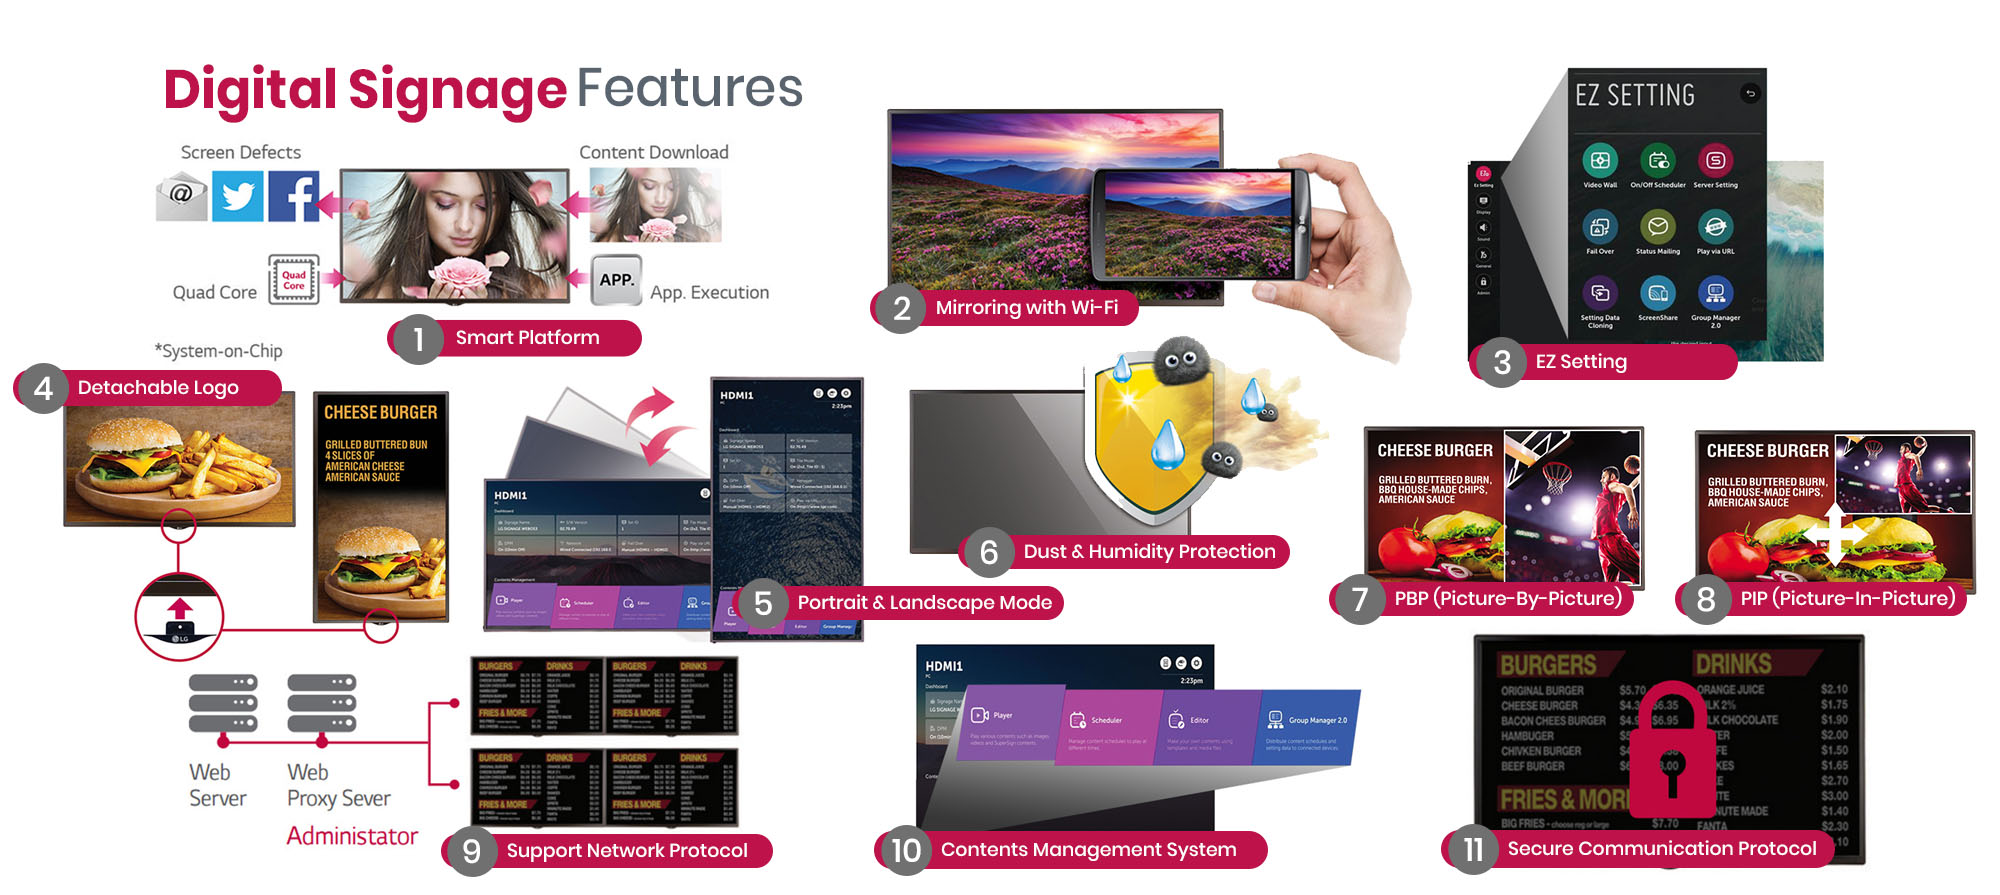 lg digital signage features